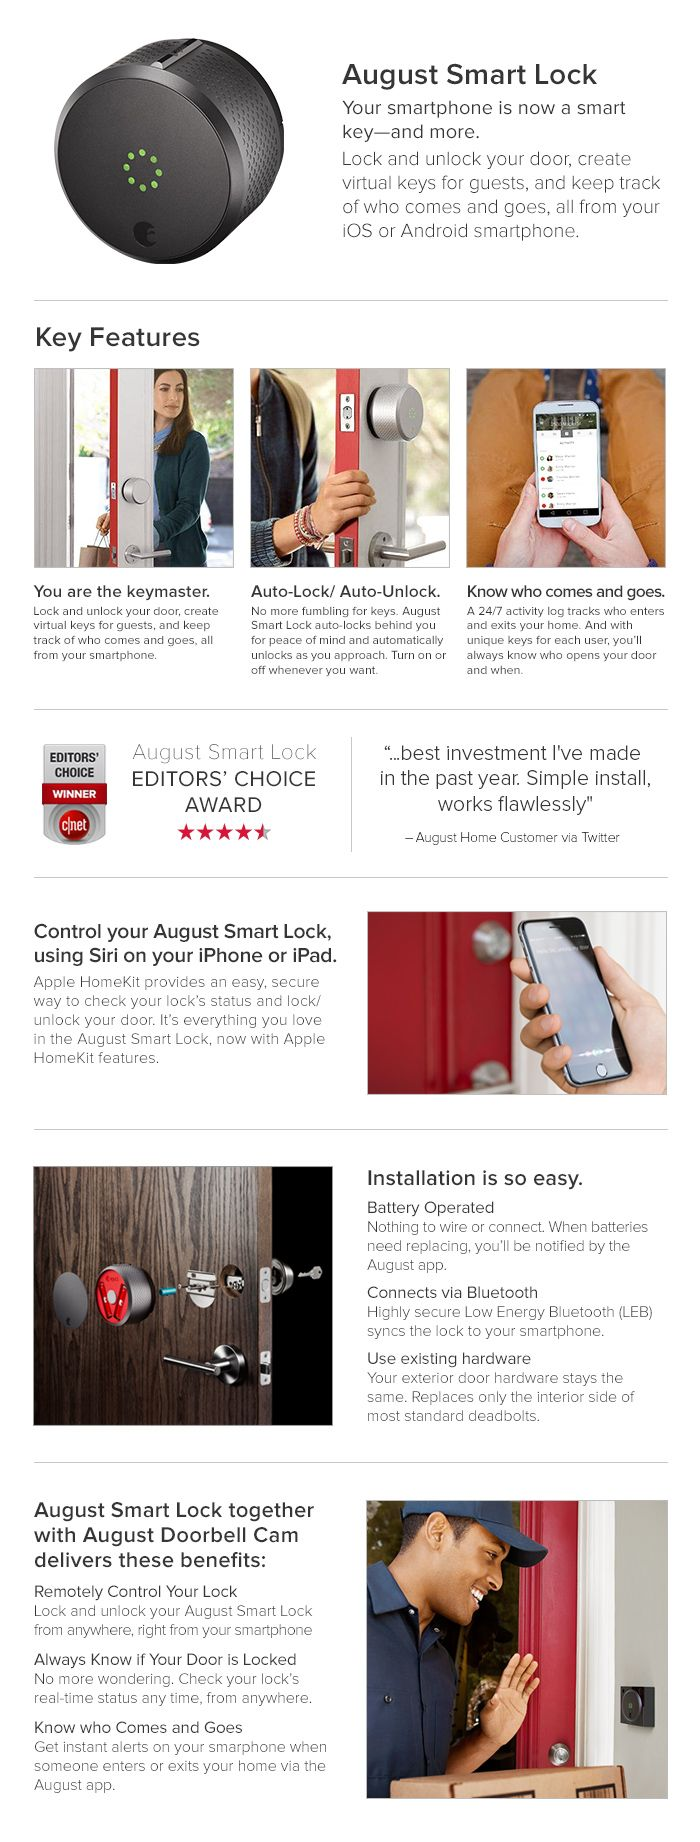 August Smart Lock Homekit Enabled, Silver-AUG-SL02-M02-S02 - The Home Depot